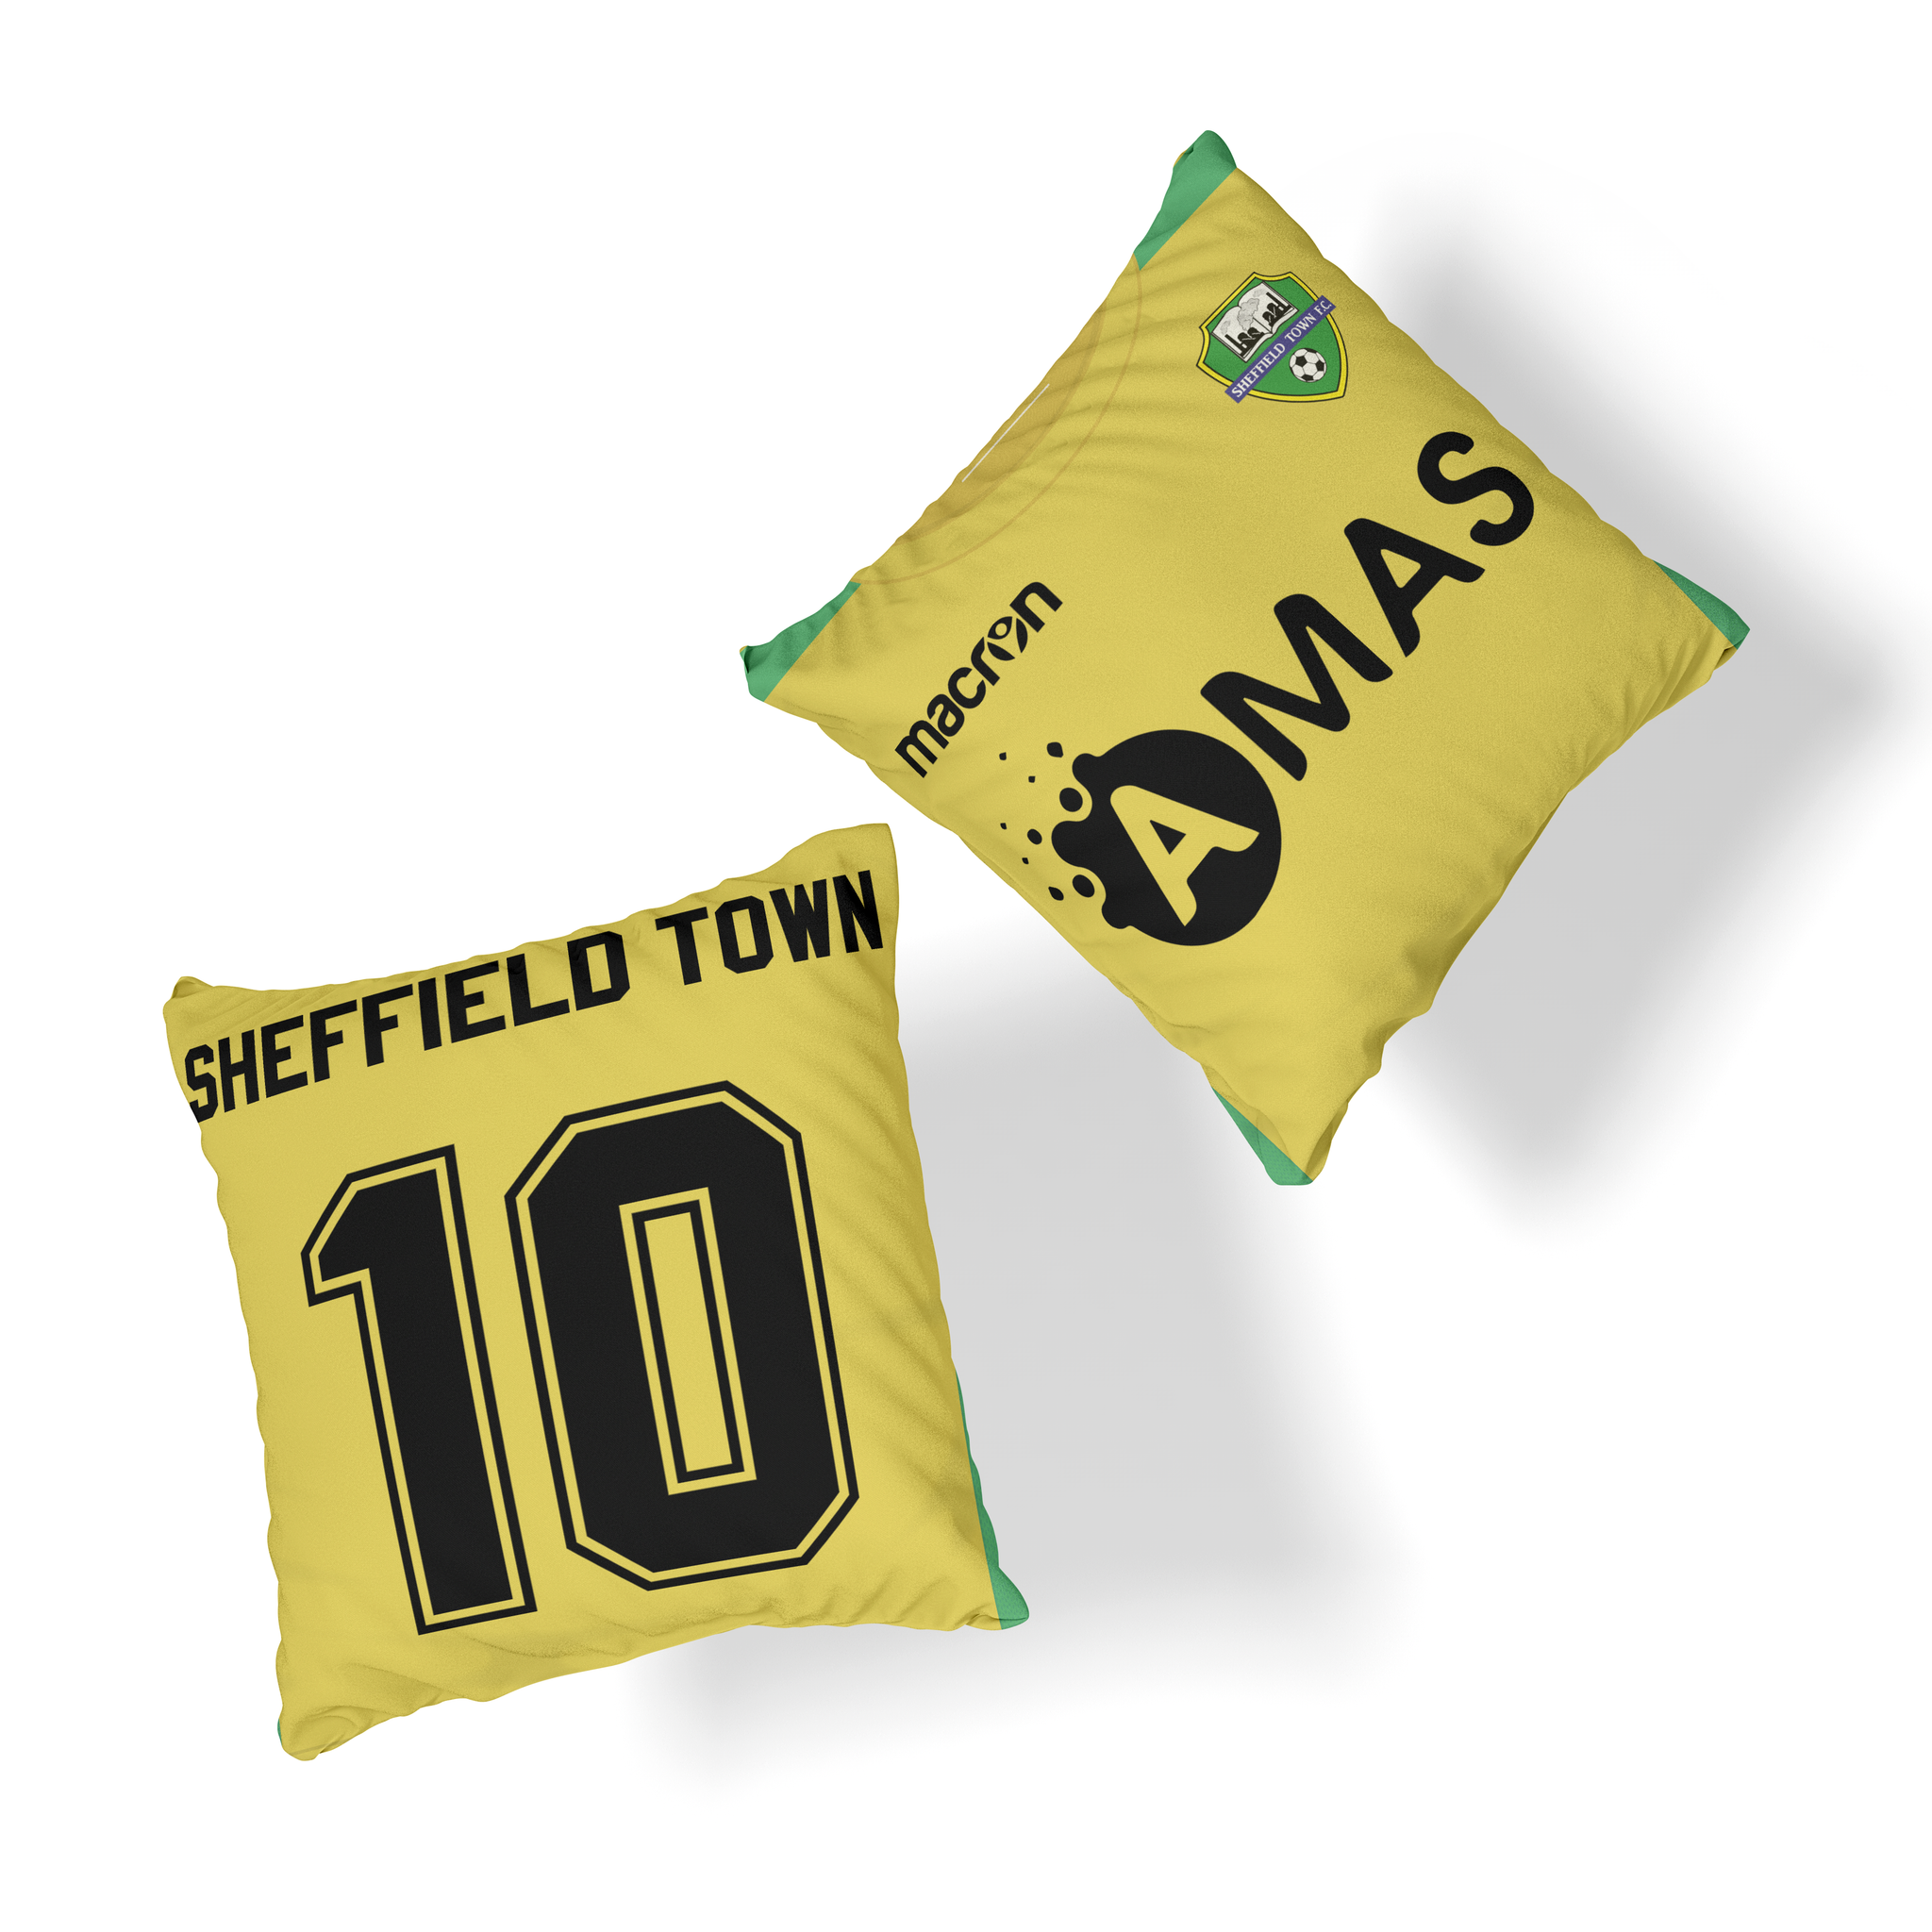 SHEFFIELD TOWN OFFICIAL CUSHION HOME